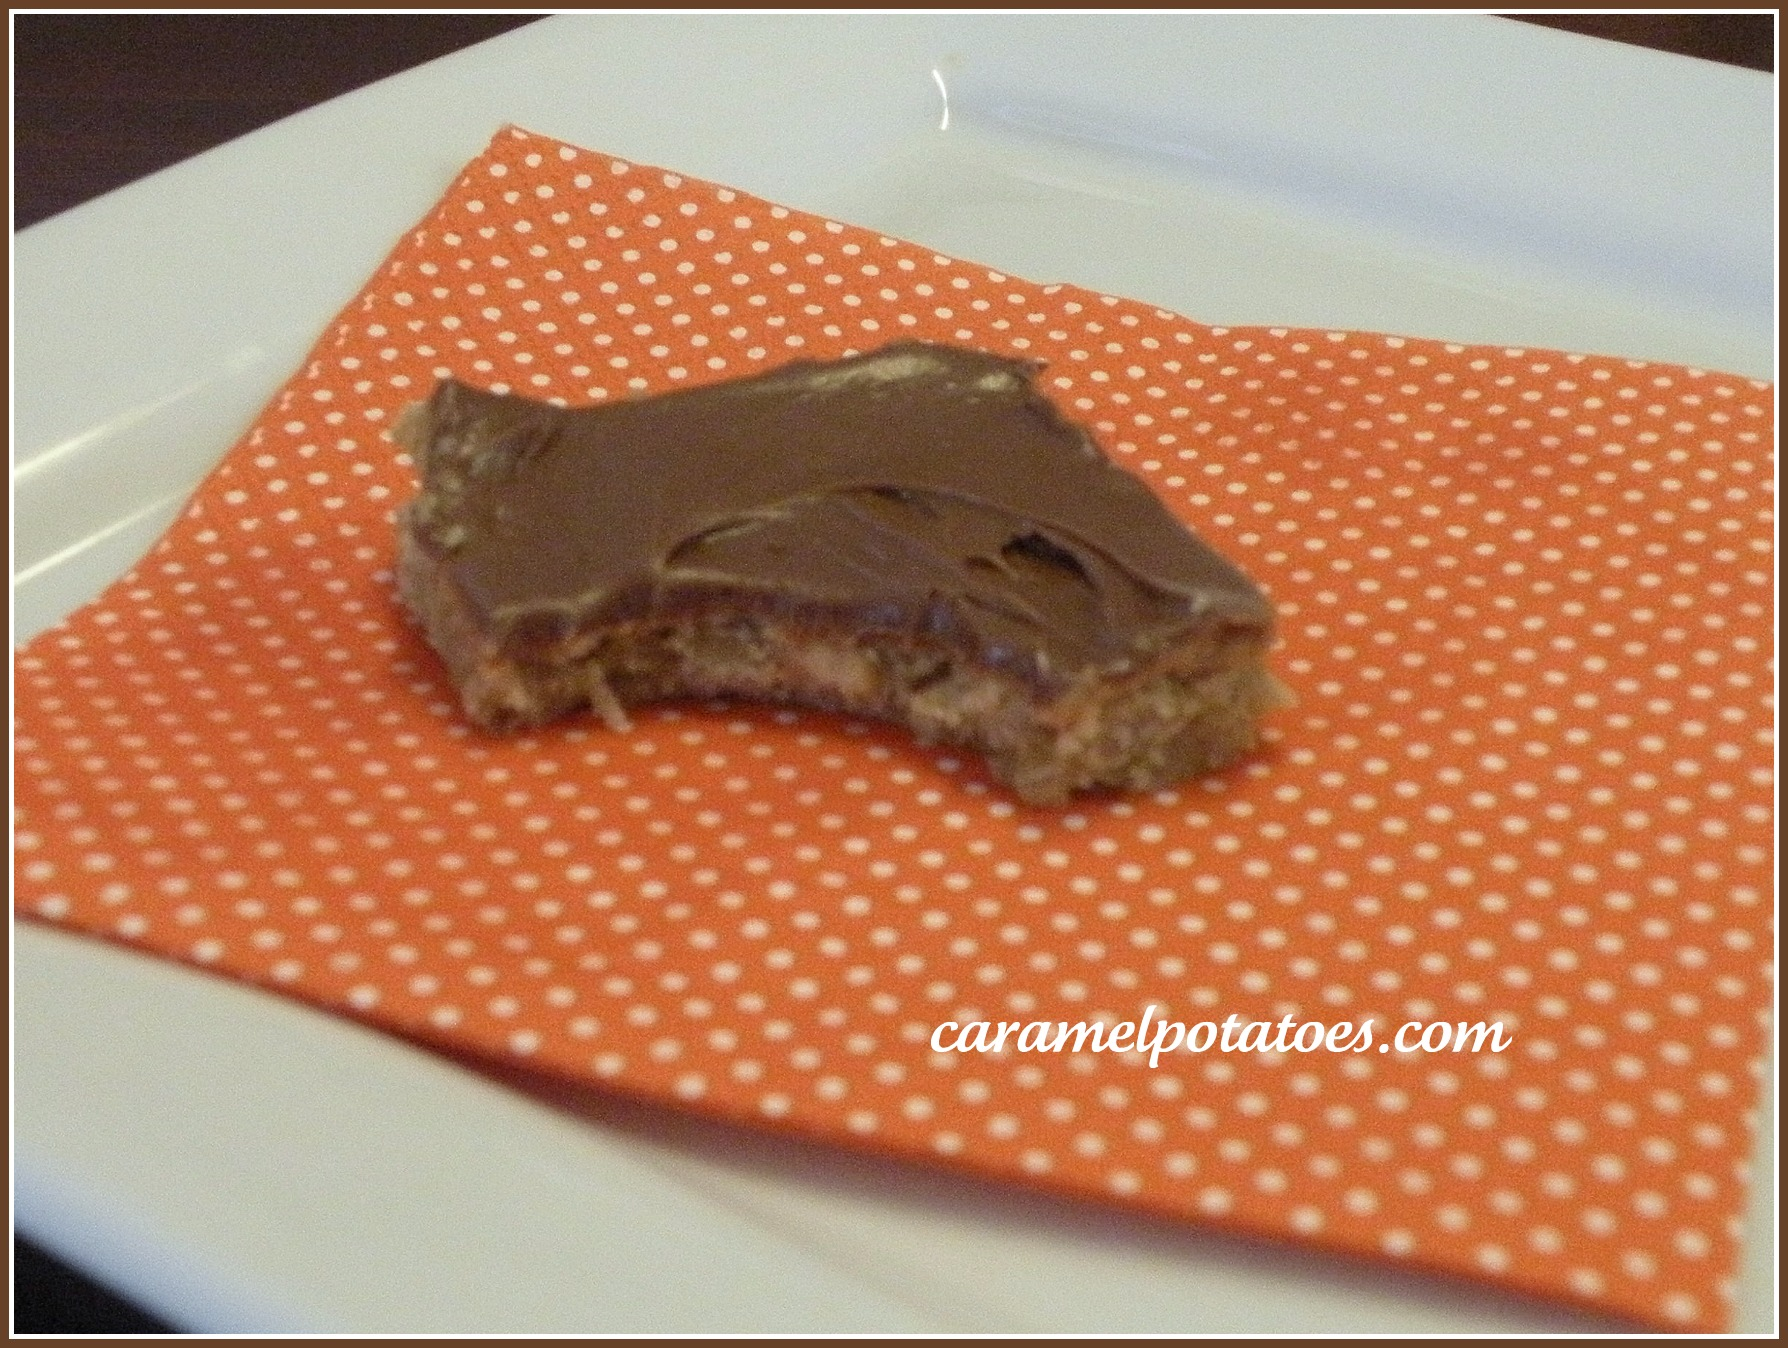 Chocolate Peanut Butter Bars Peanut Butter Bars With